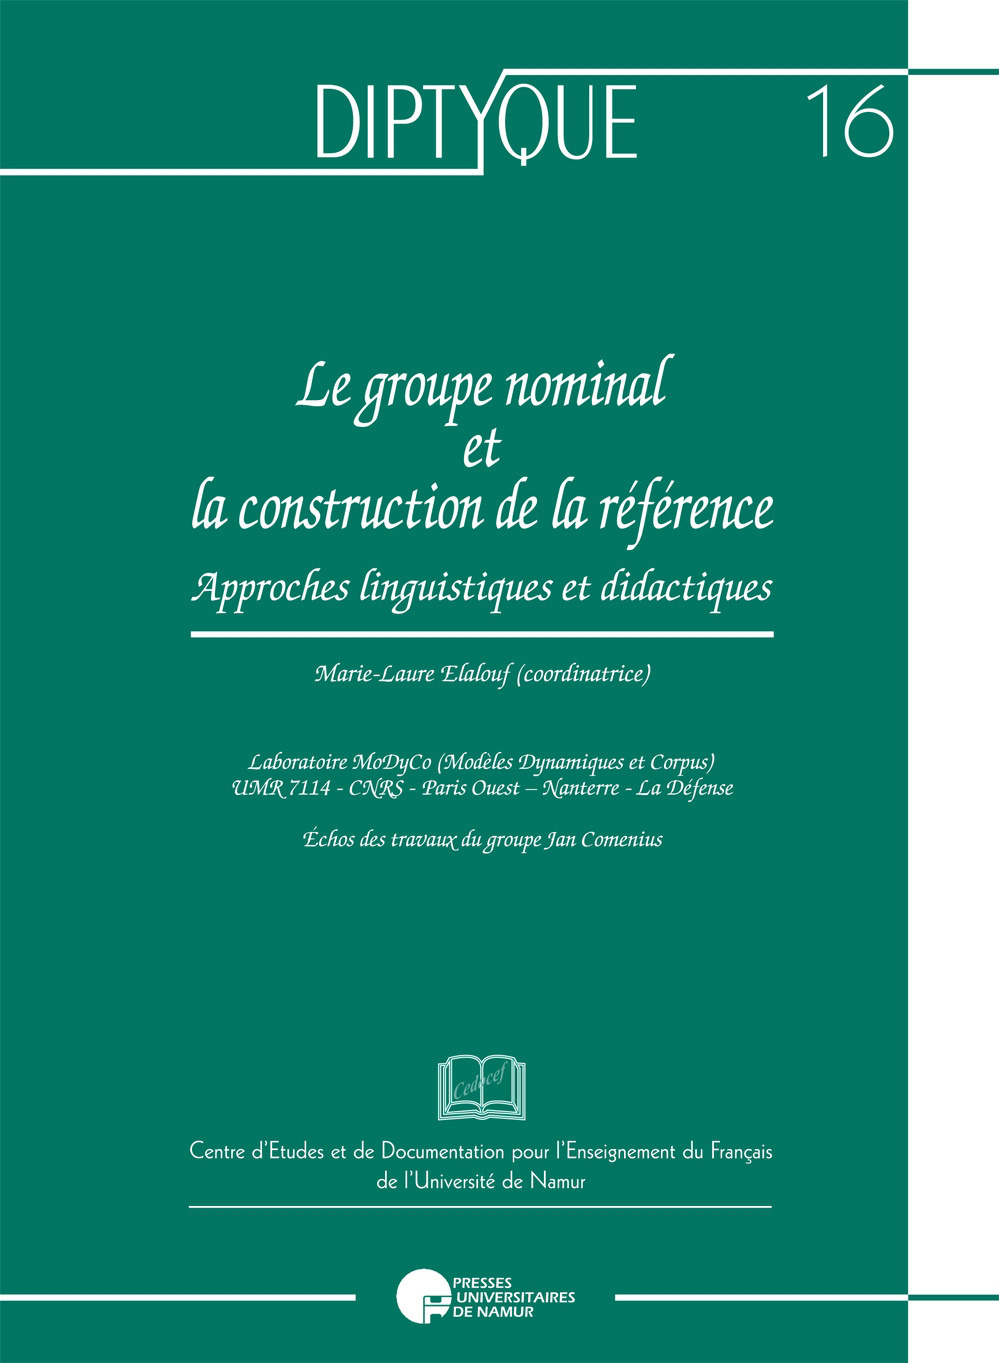 LE GROUPE NOMINAL ET LA CONSTRUCTION DE LA REFERENCE